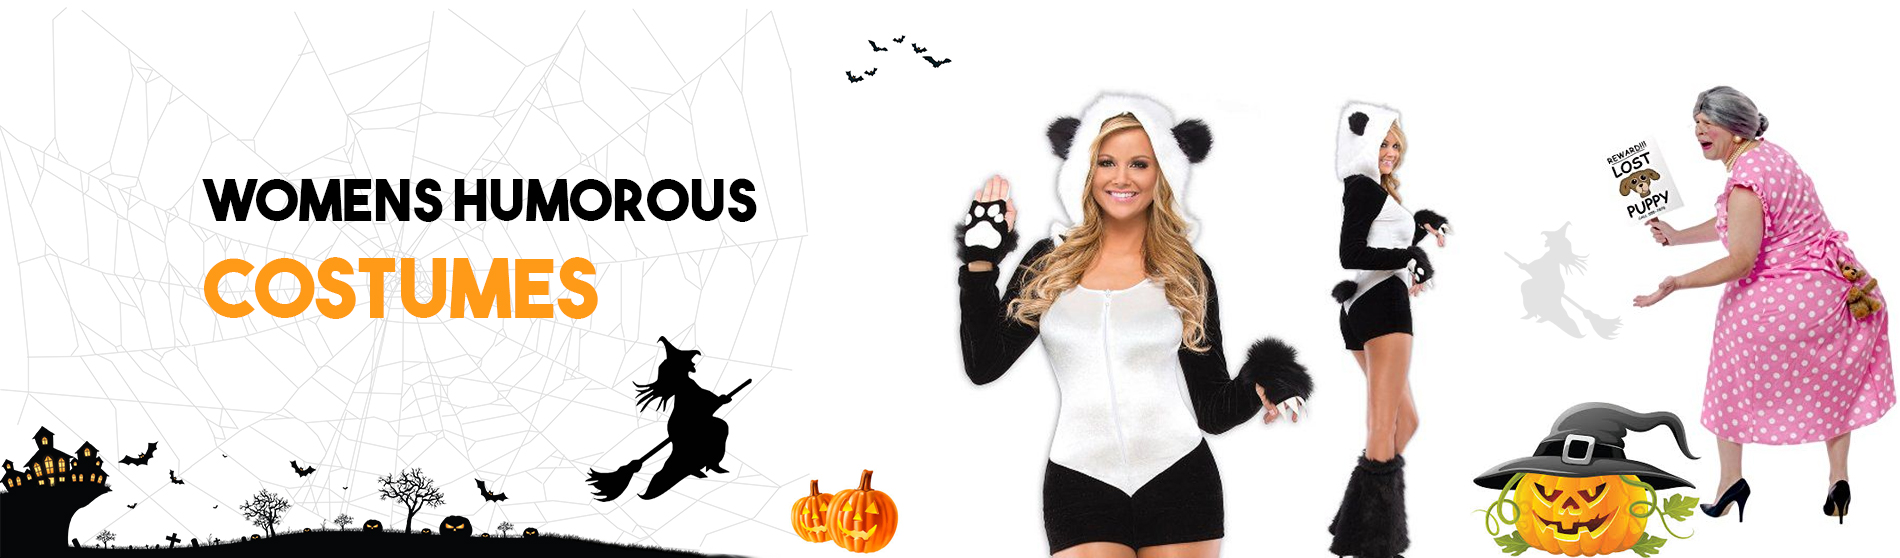 Womens Humorous Costumes